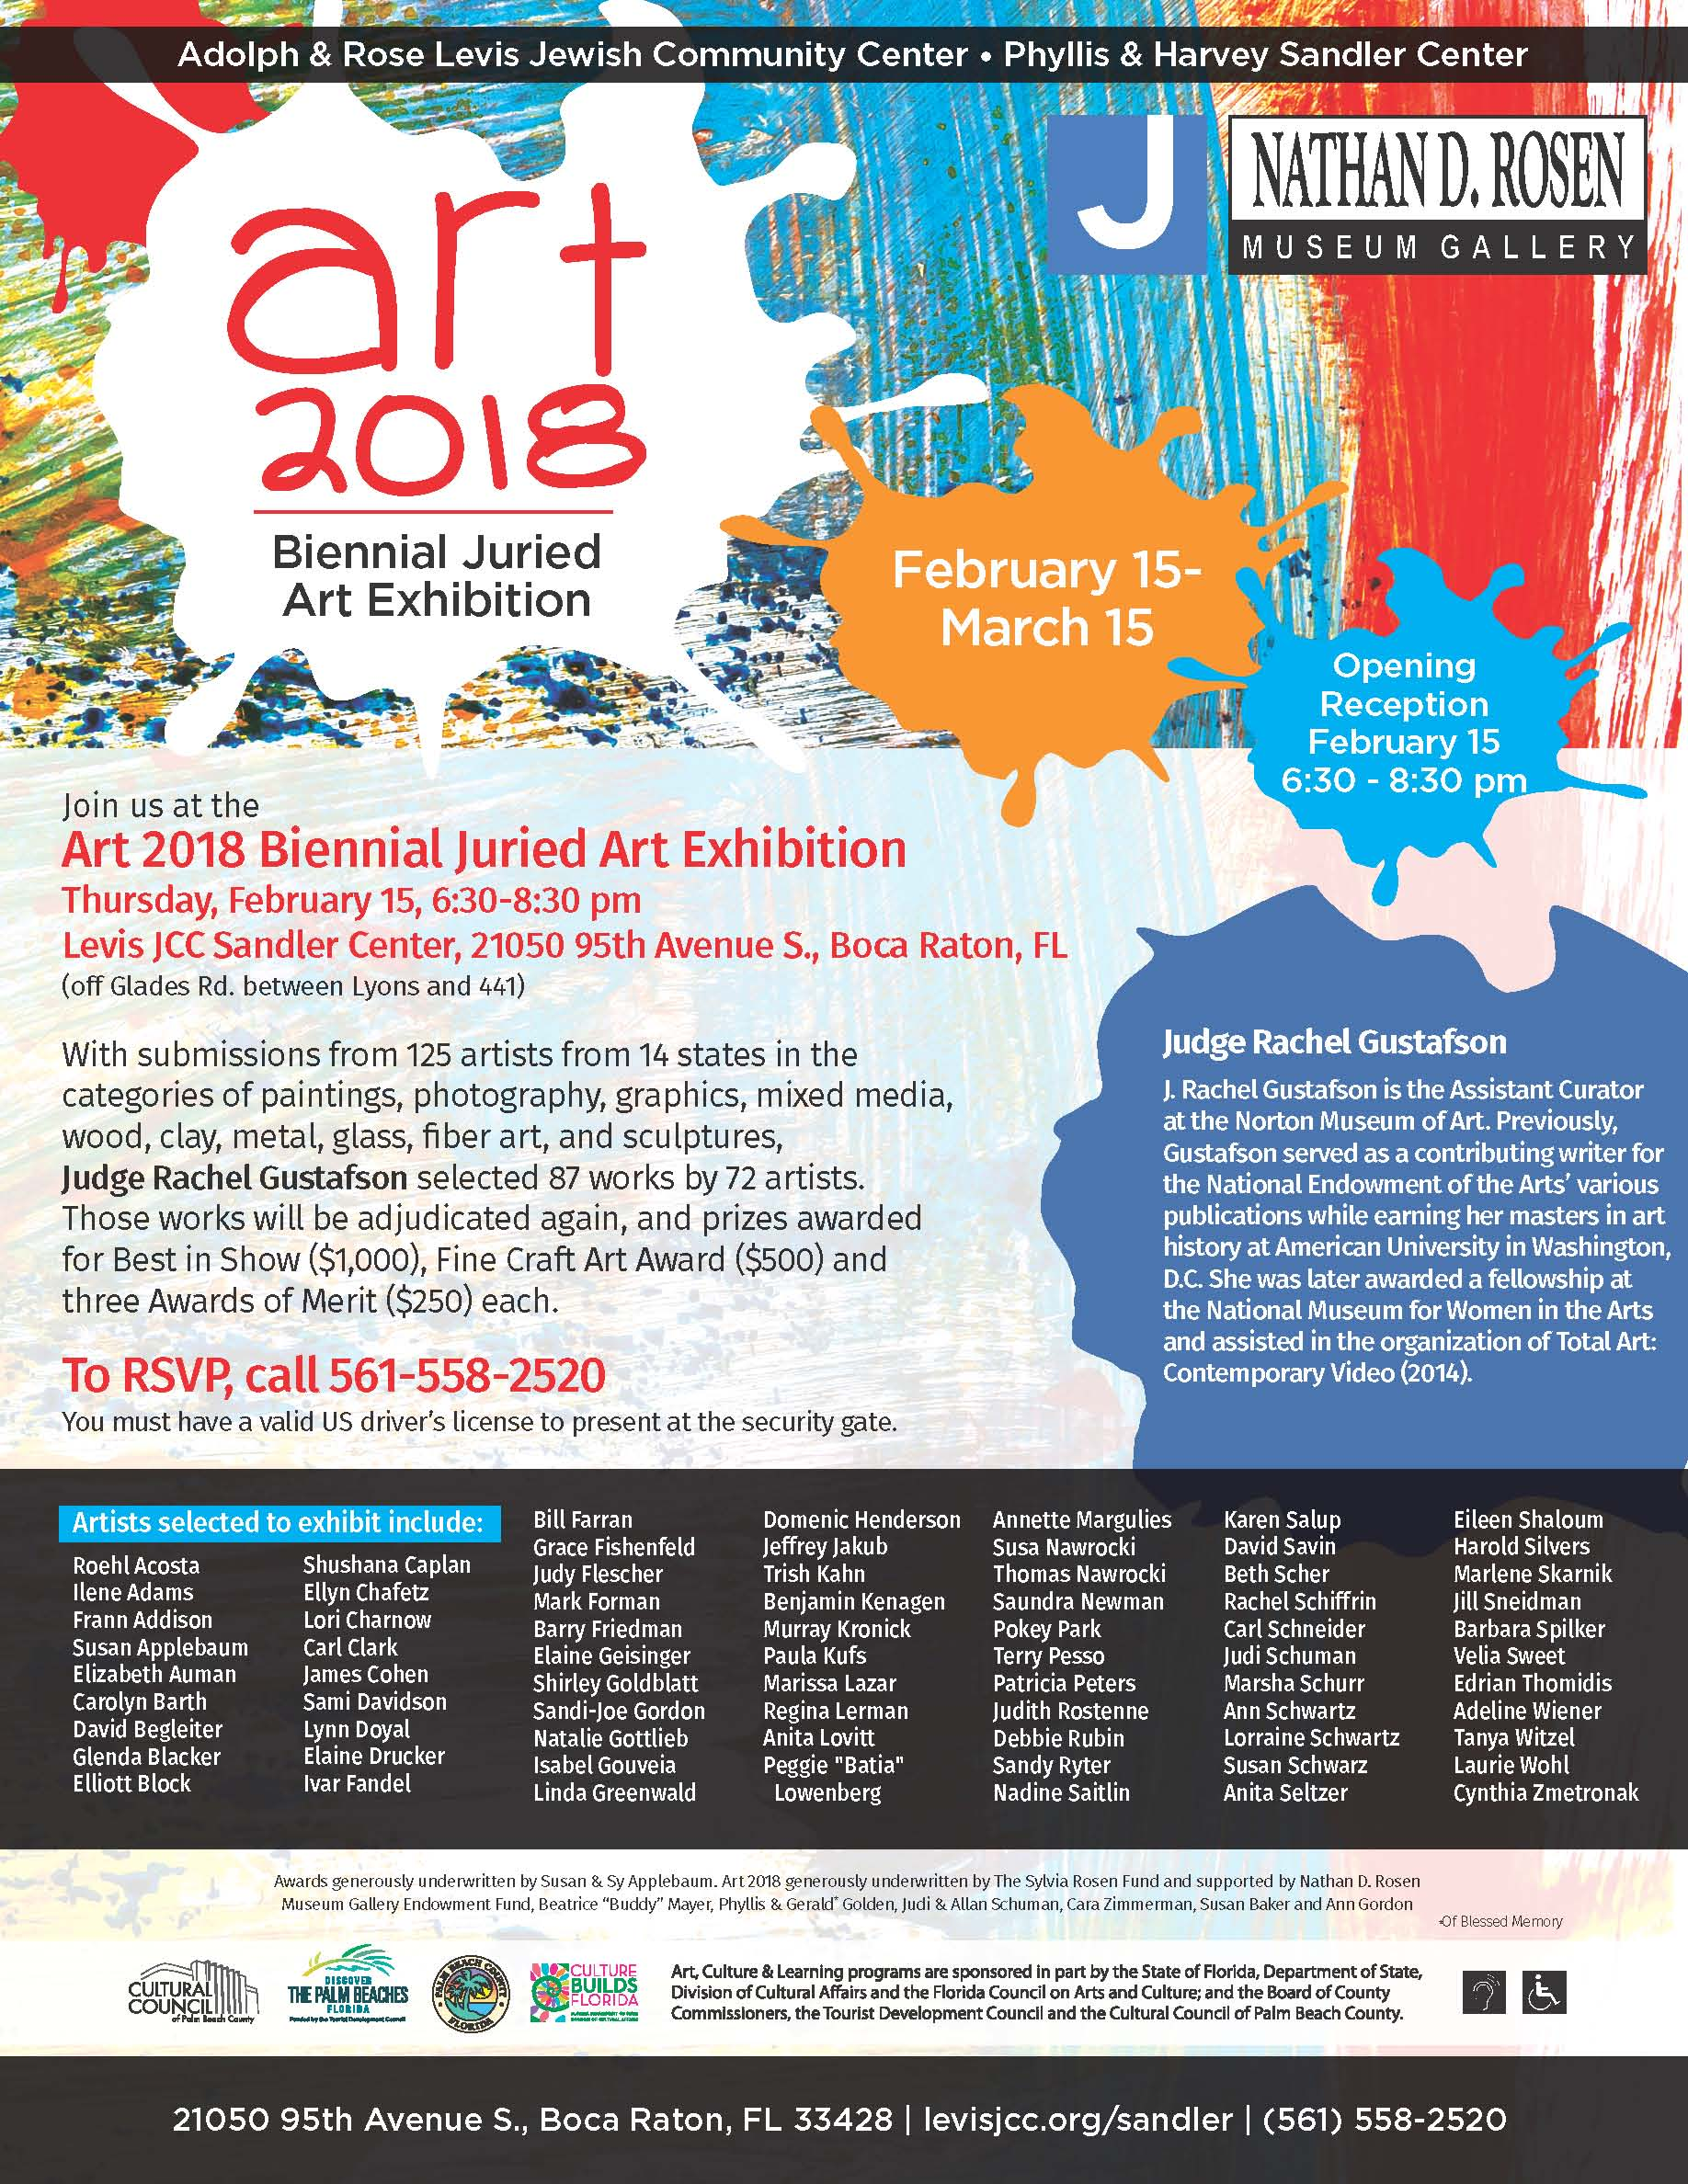 Biennial Juried Art Exhibit